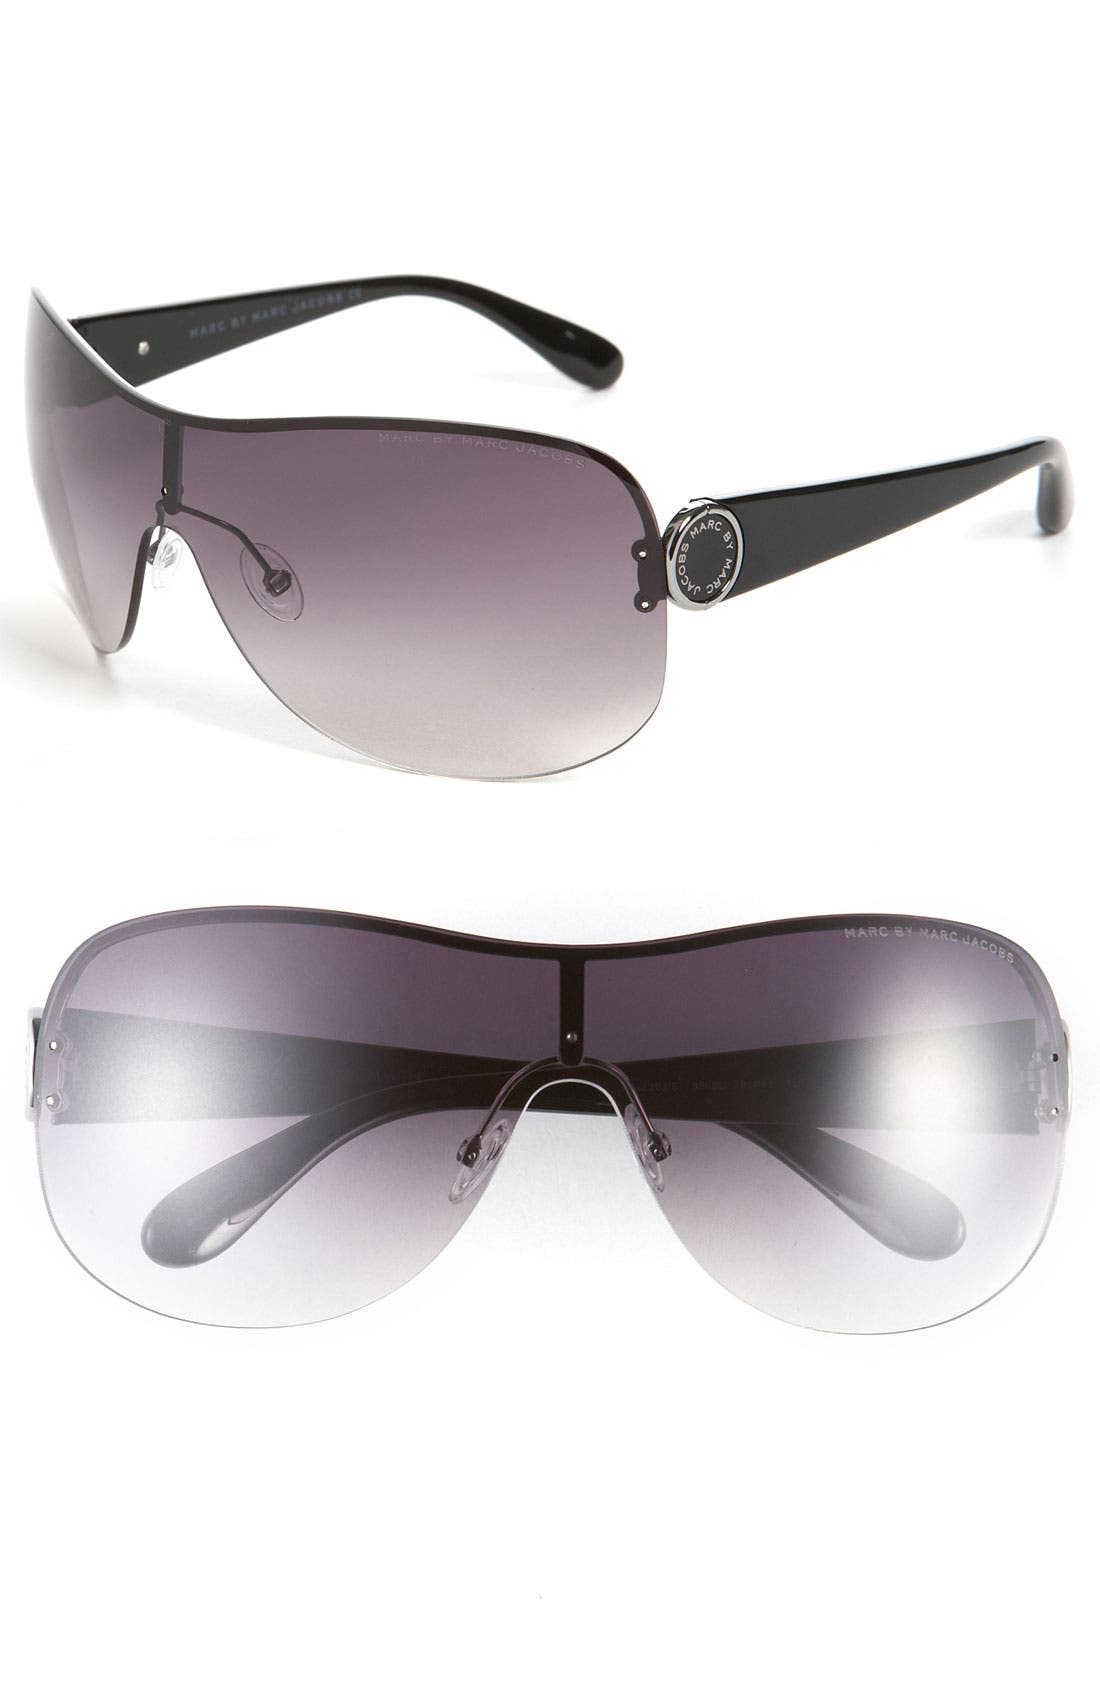 Alternate Image 1 Selected - MARC BY MARC JACOBS 99mm Rimless Shield Sunglasses